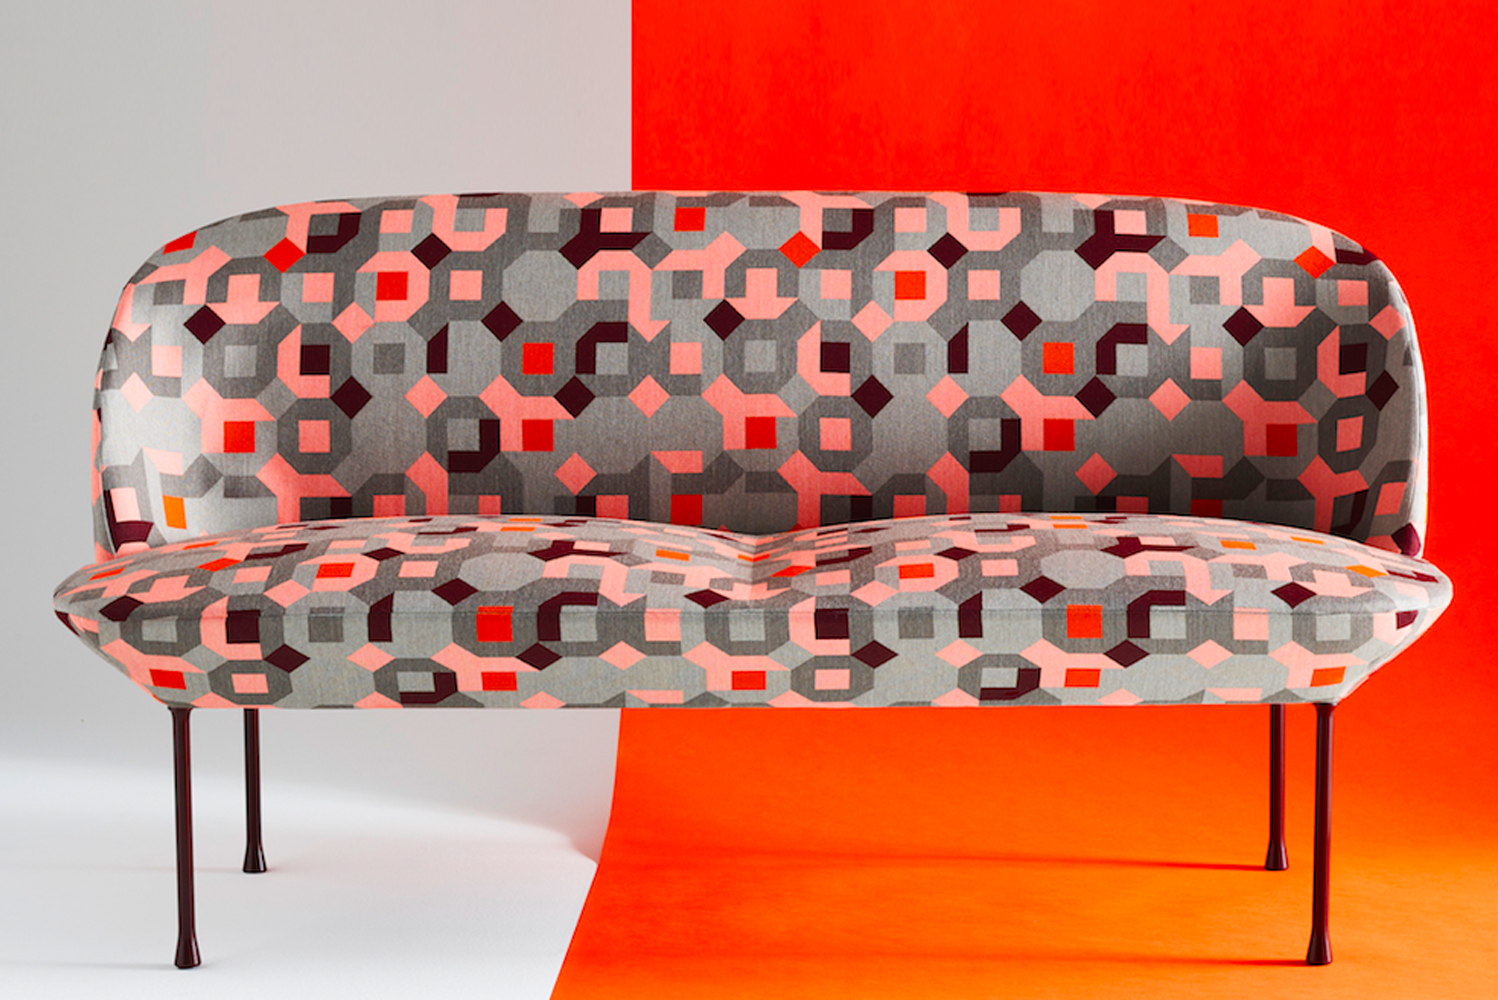 All the fabrics are high-performance, exceeding 100,00 double rubs, and two patterns join Carnegie's Elements collection of upholsteries under $40 per yard.